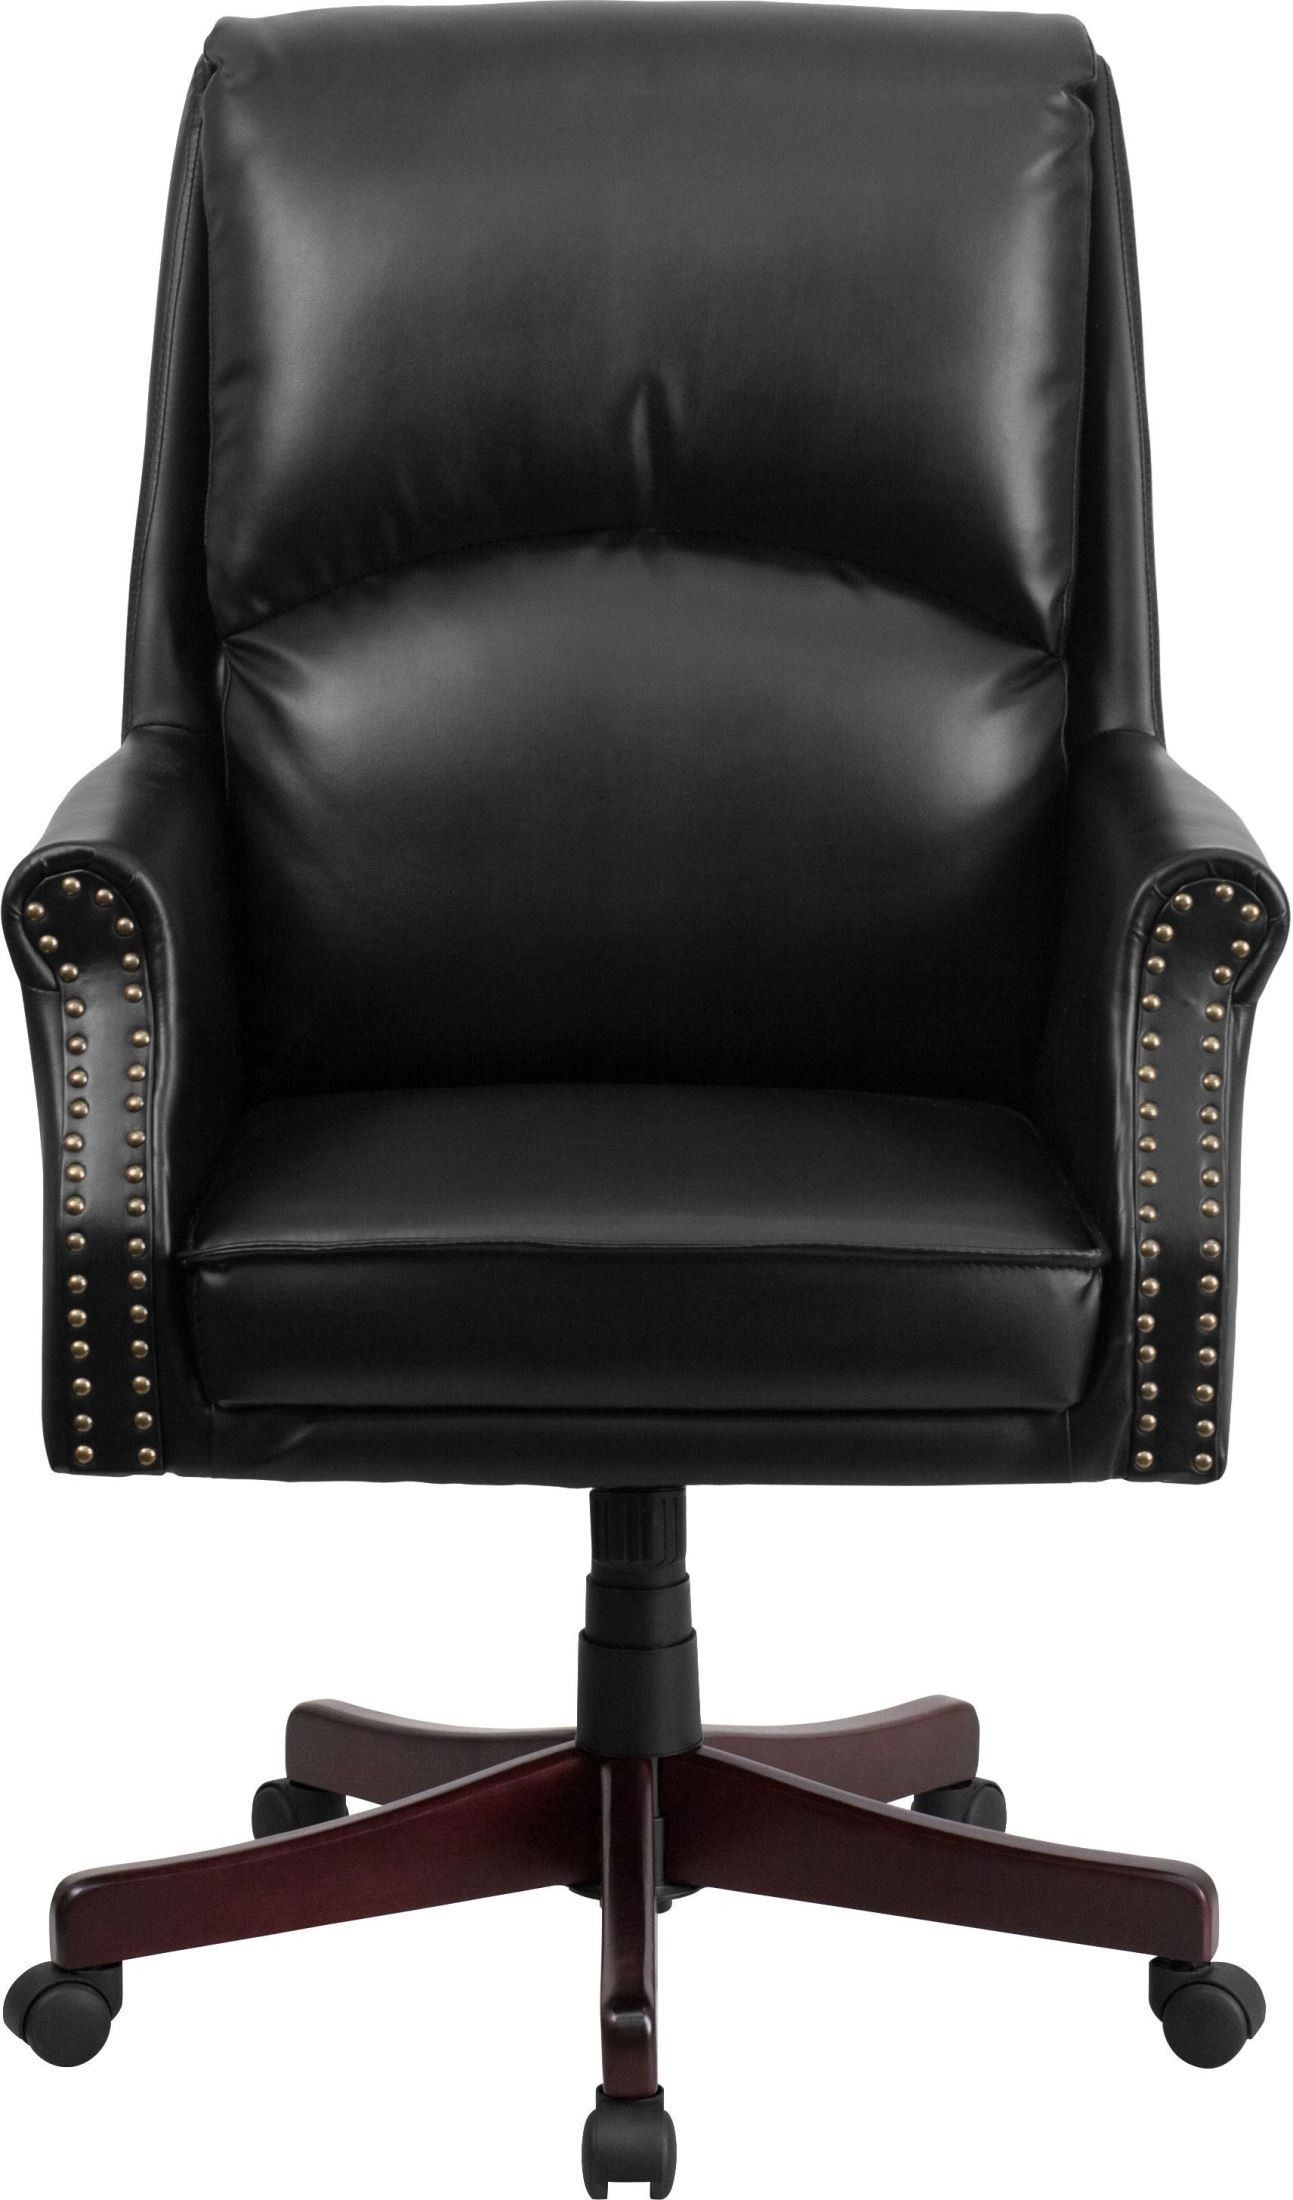 tall swivel chair queen anne style recliner pillow back black executive office from